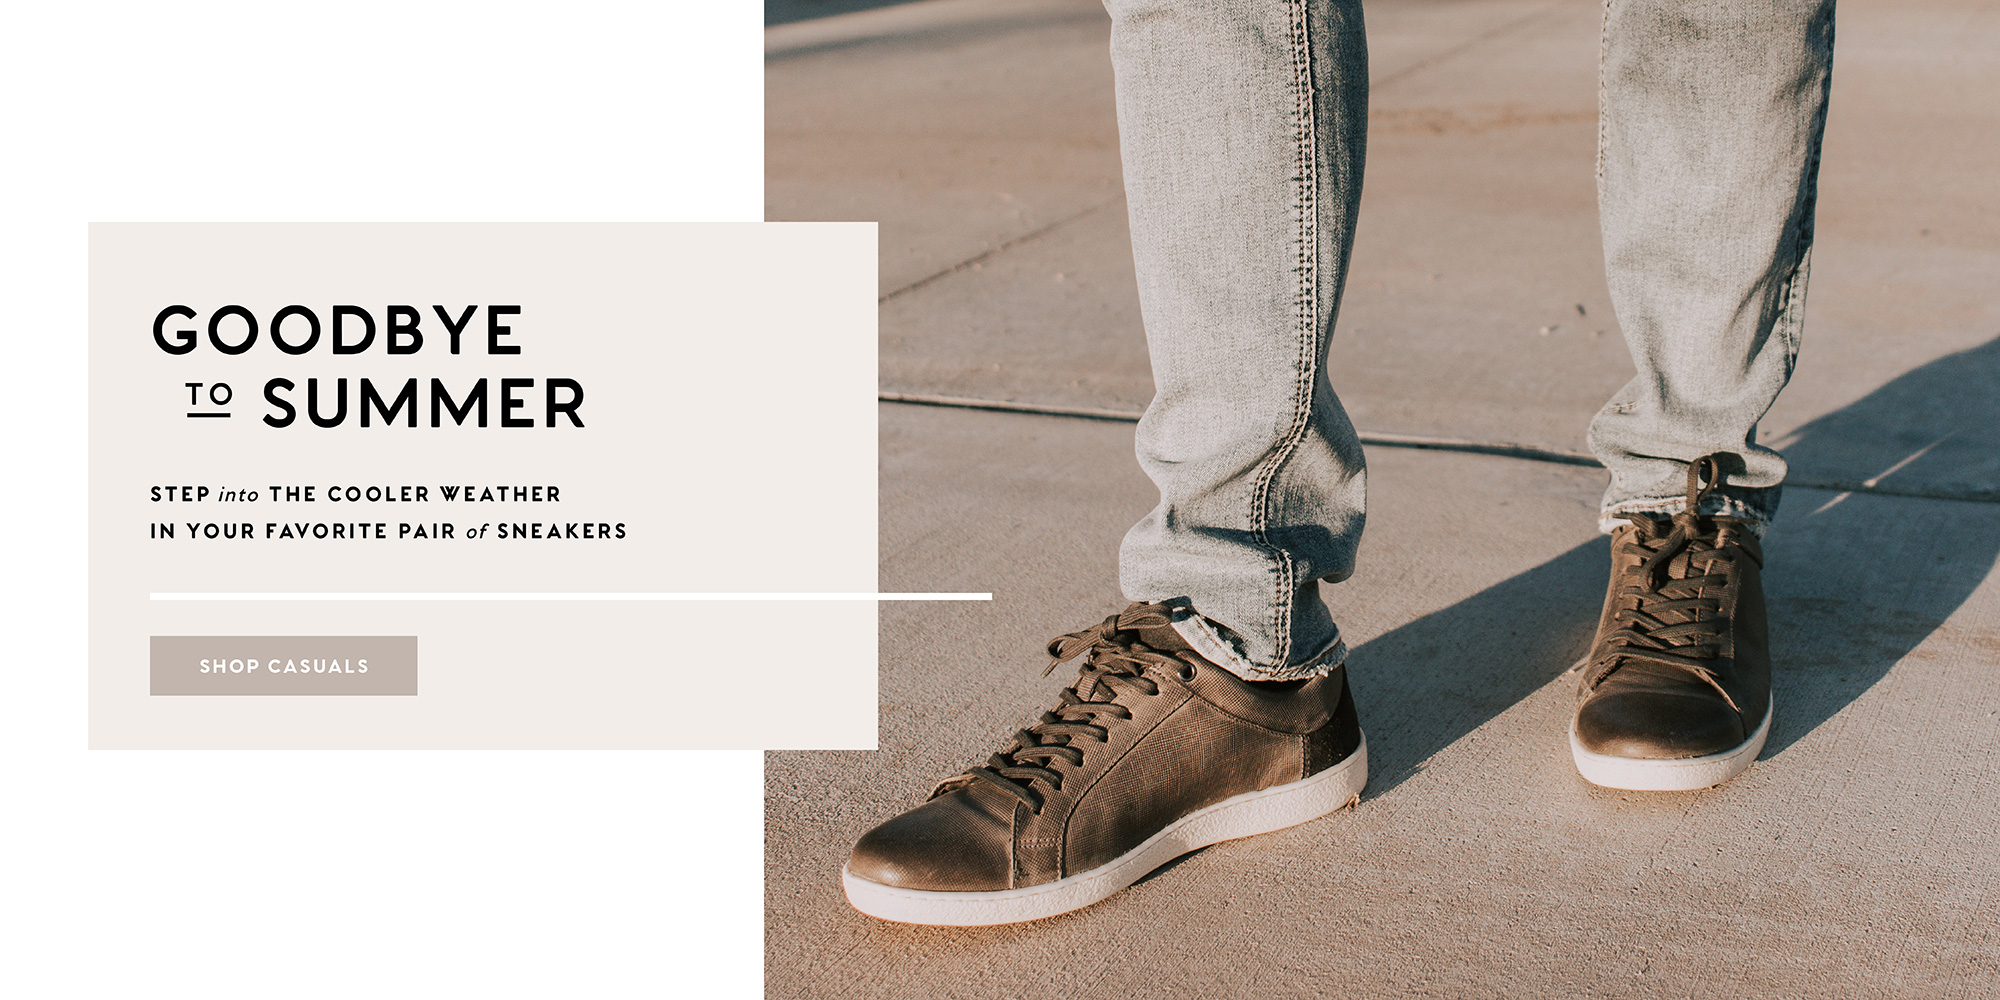 sneakers, leather sneakers, shoes, mens shoes, casual shoes, fall style, casual style, mens style, fall sneakers, dress sneakers